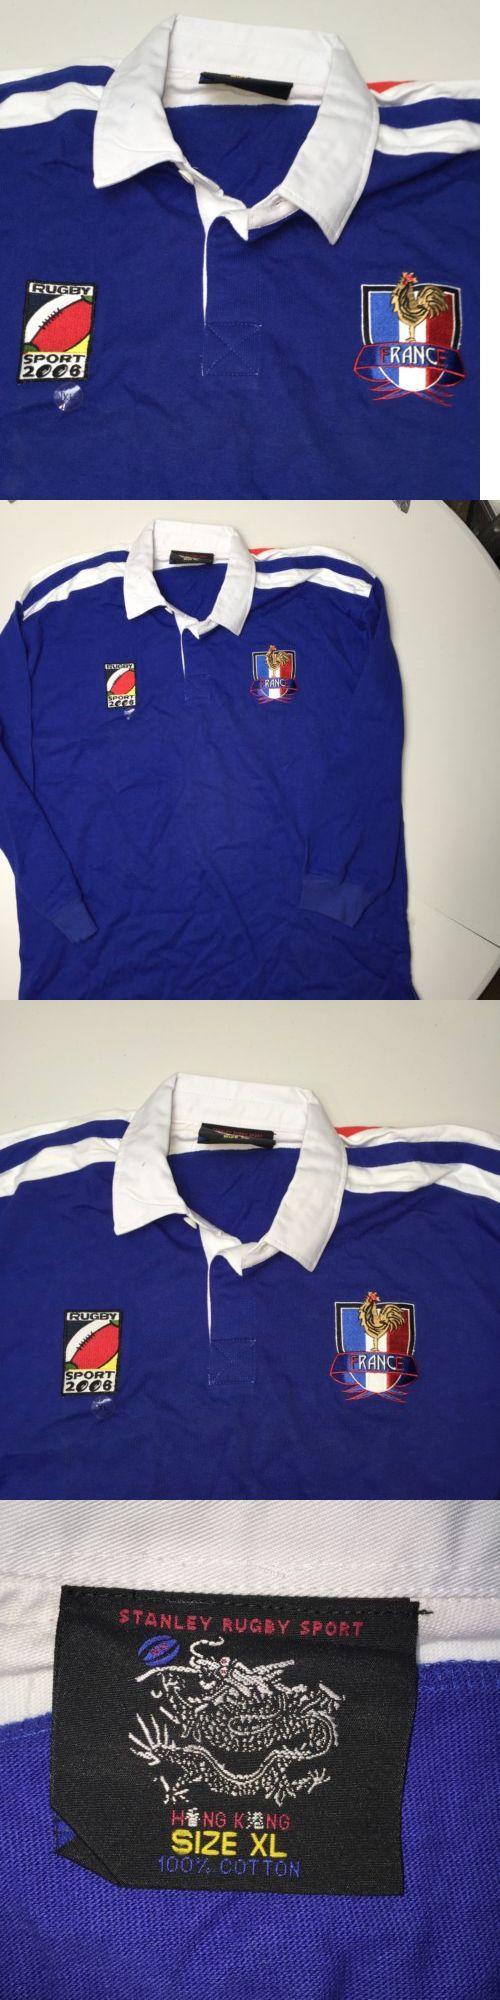 Rugby 21563: Scb Stanley Rugby Sport France Shirt New Blue 2006 -> BUY IT NOW ONLY: $49.85 on eBay!